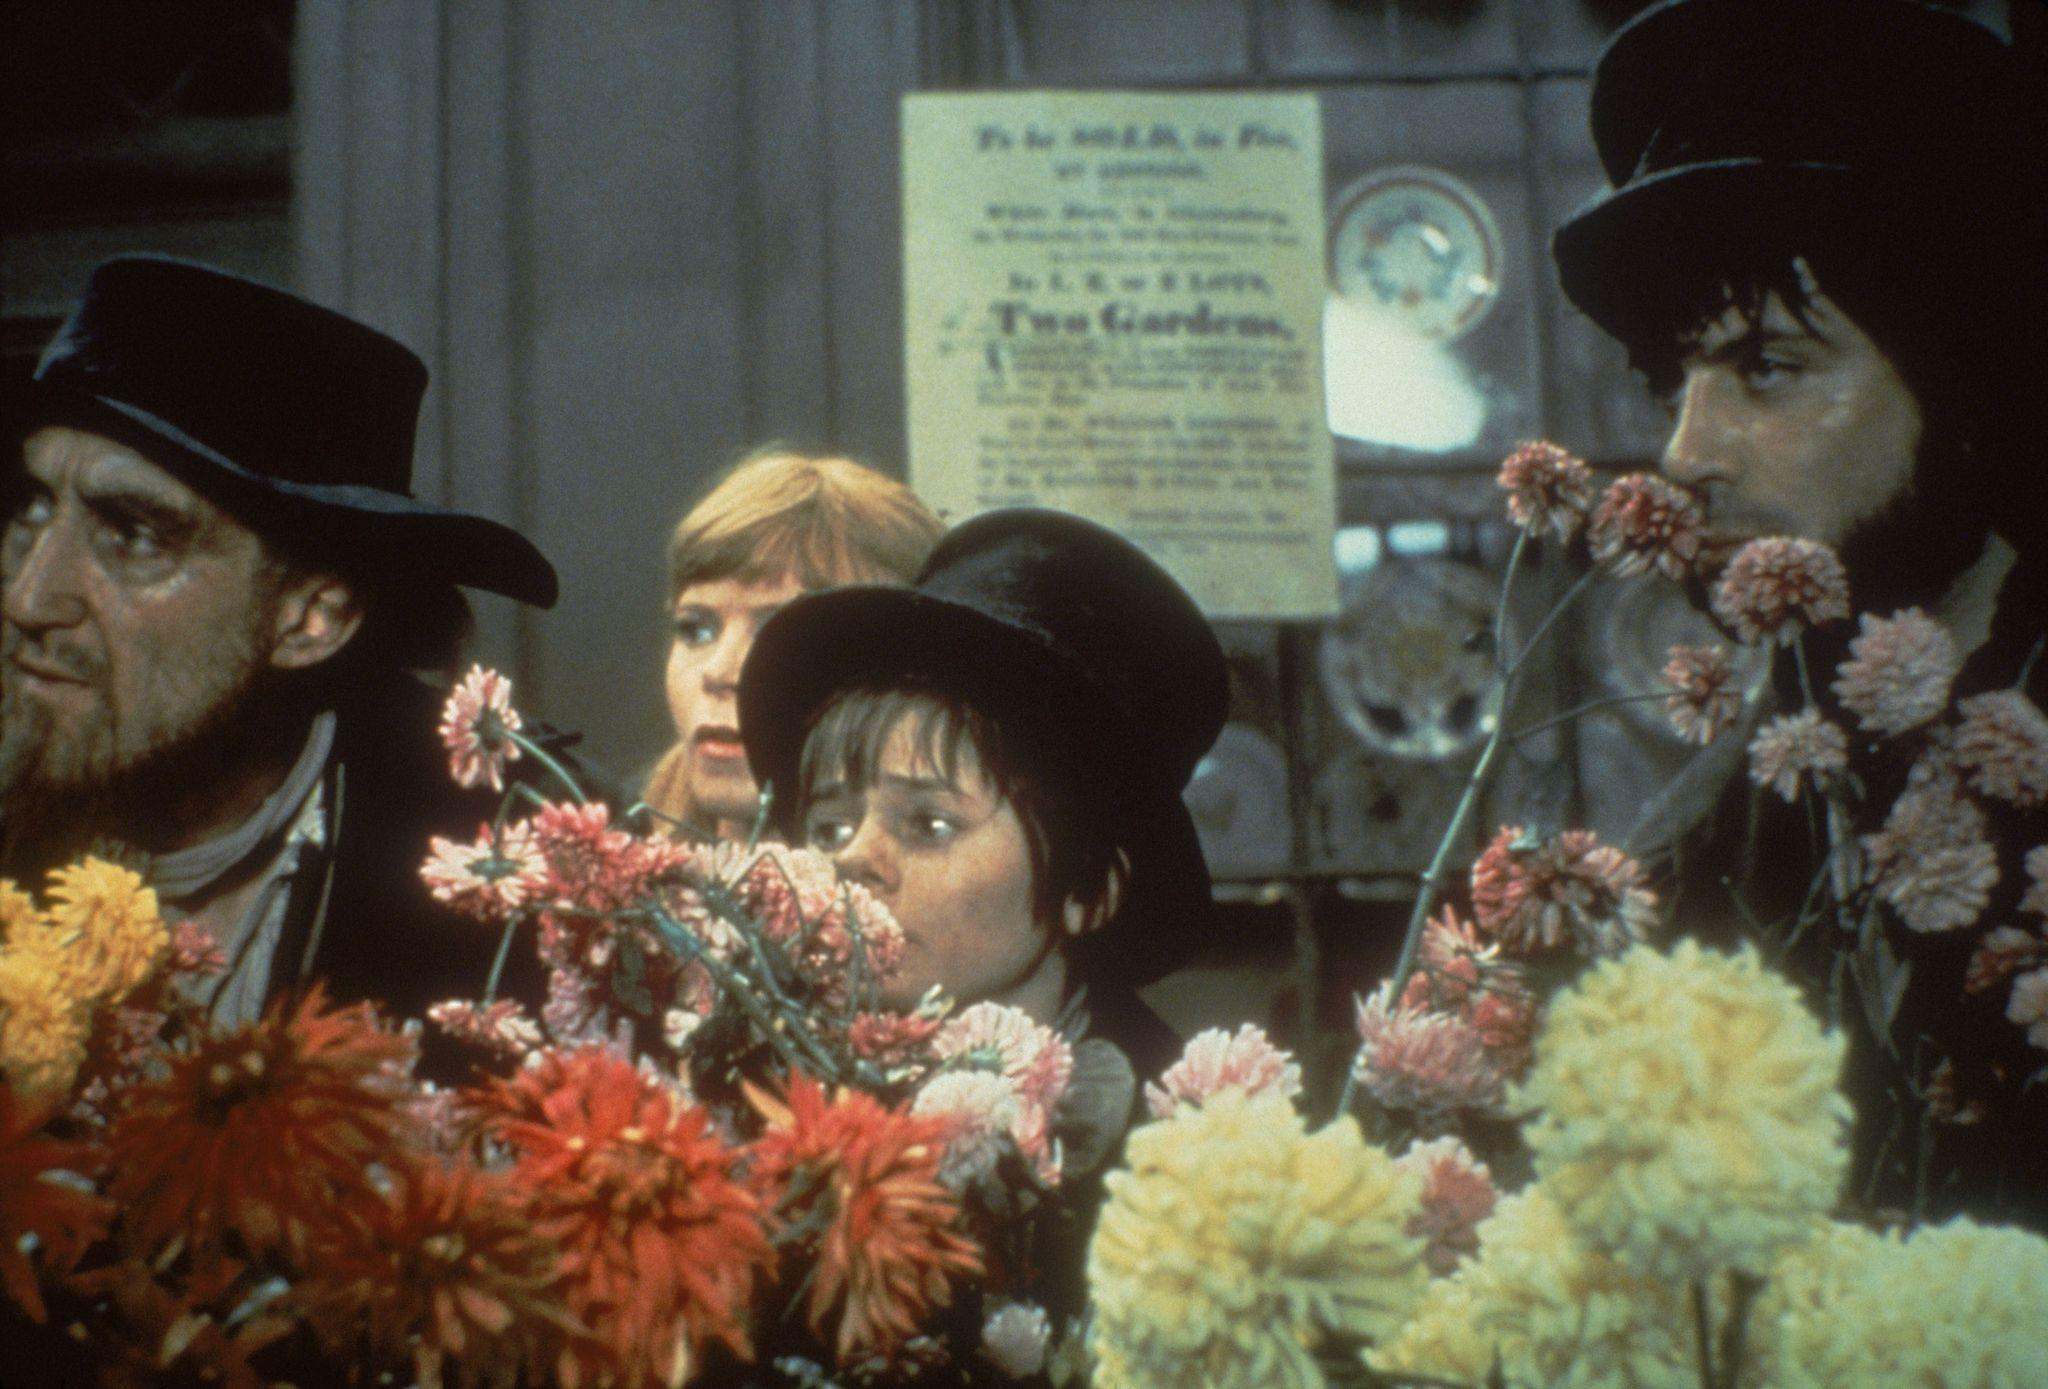 Oliver! (1968): Carol Reed's Musical Won Best Picture Oscar, but Is It Really Good? | Emanuel Levy